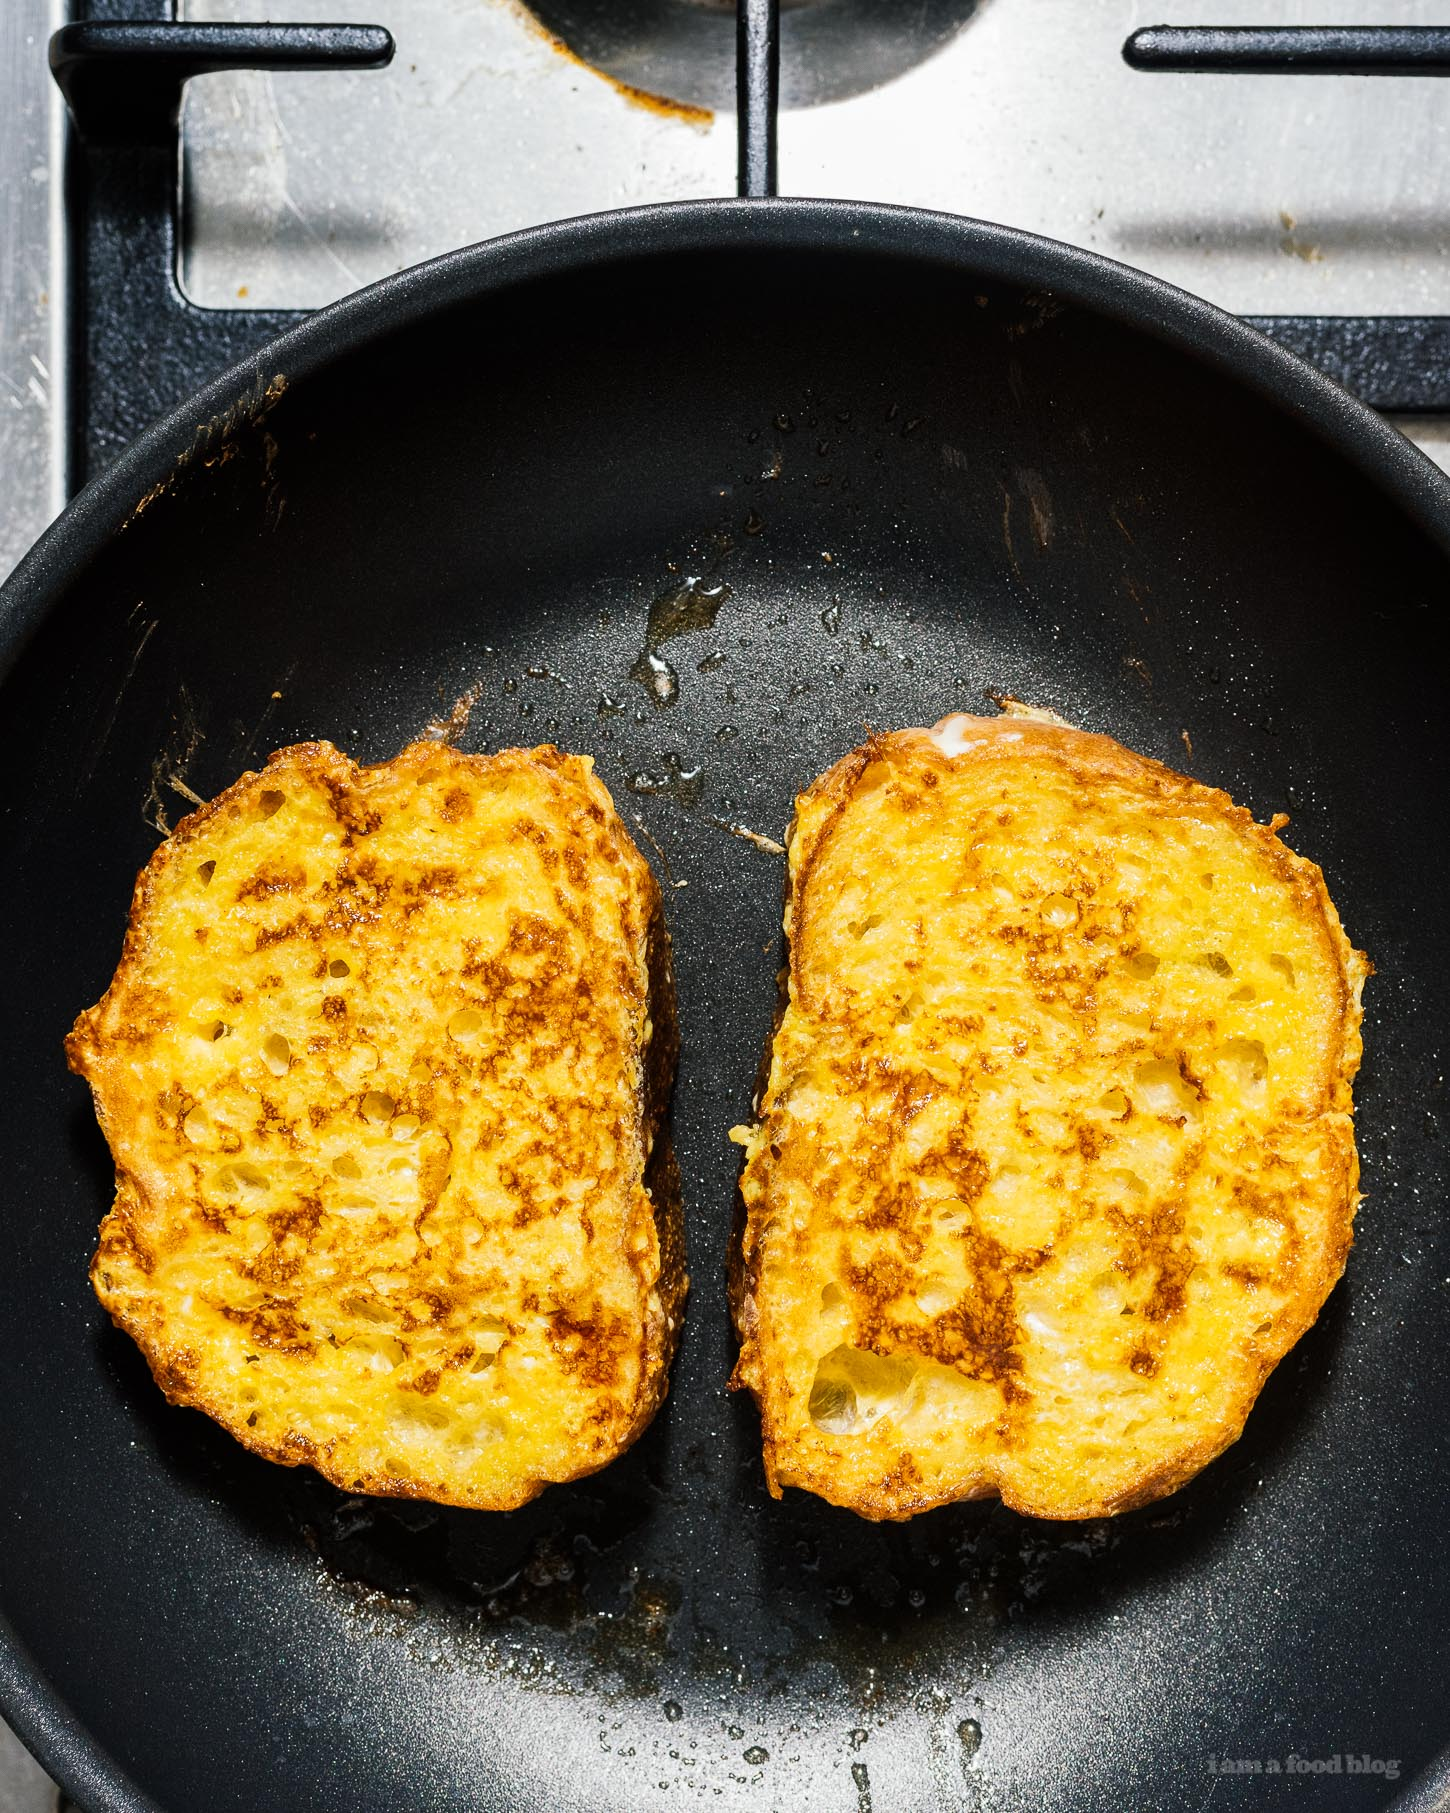 How to make great, basic french toast | www.iamafoodblog.com